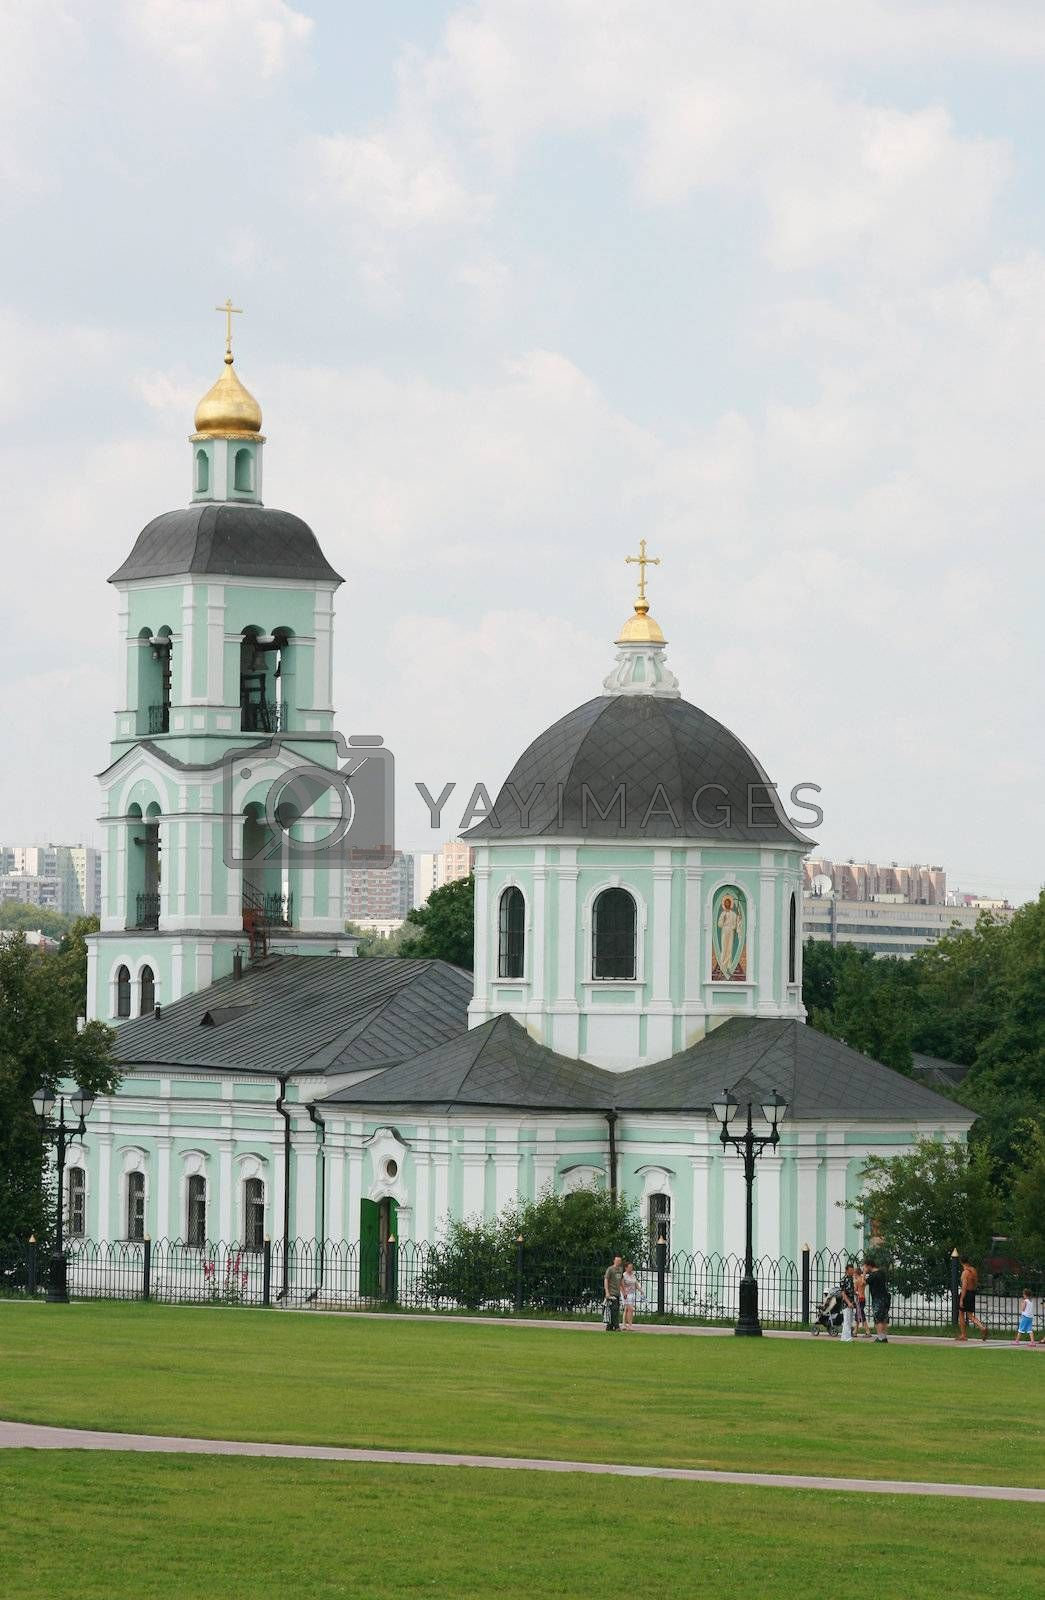 Christian church with gold domes in Moscow